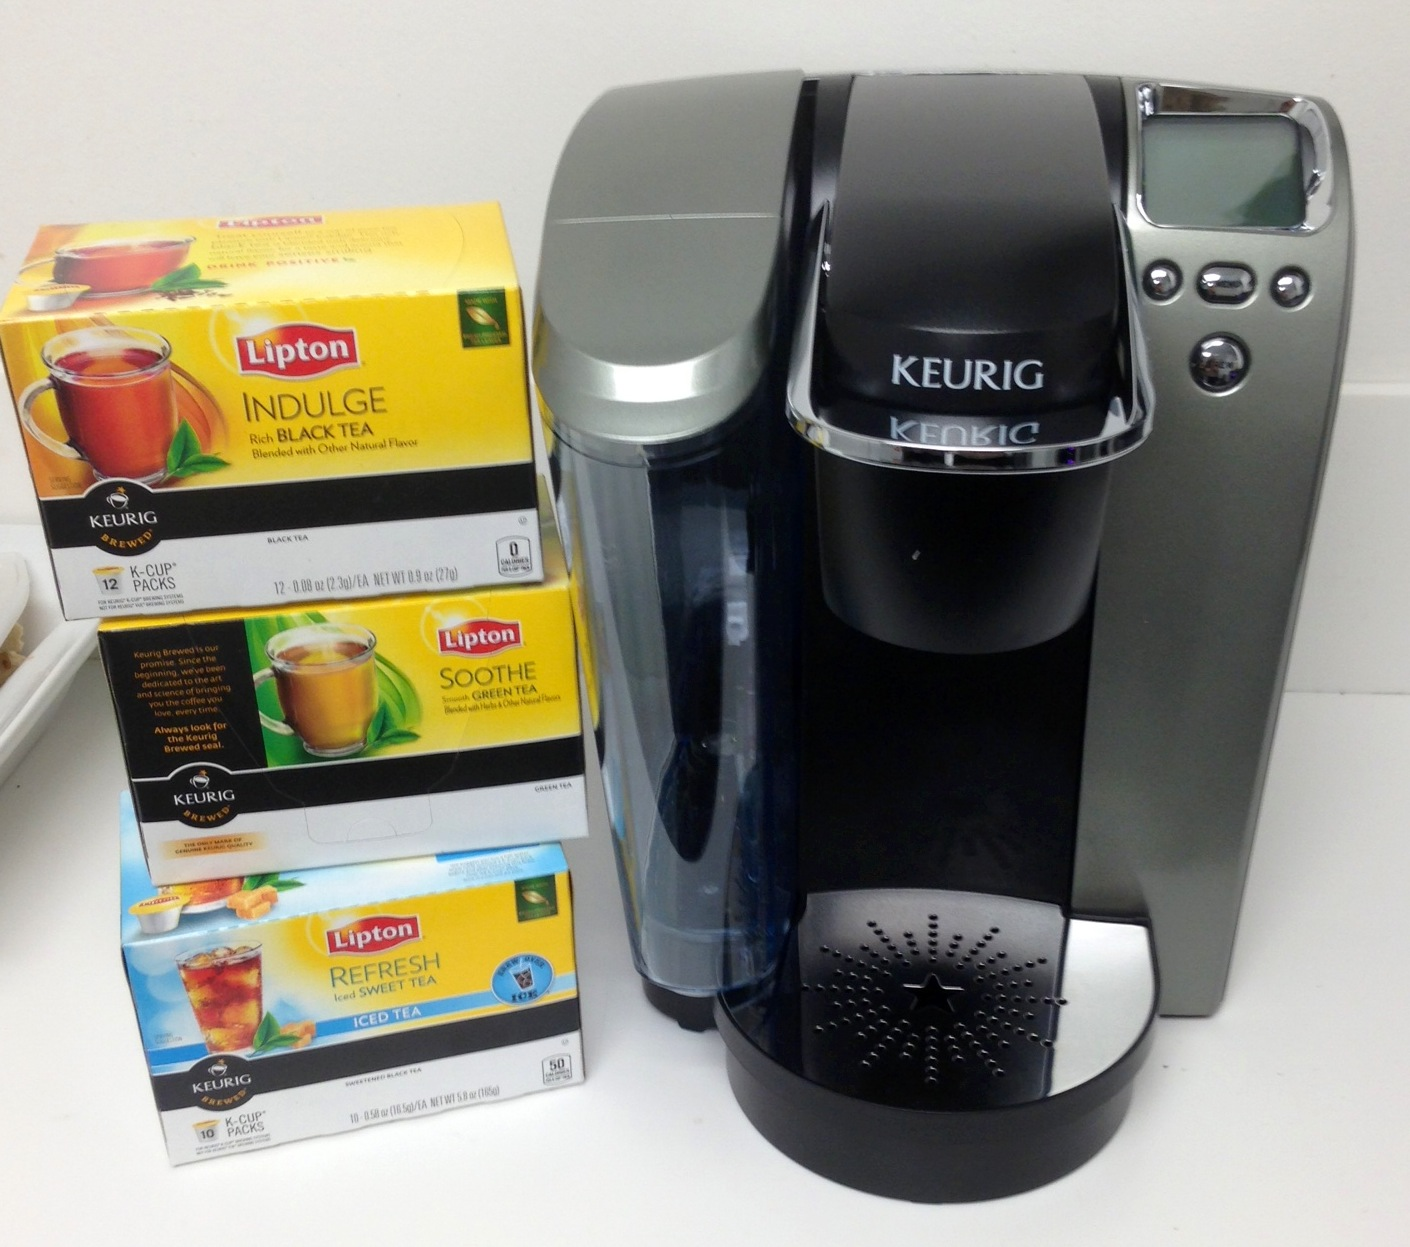 food, product review and FREEBIES - Win Lipton K-Cups & Keurig Brewing Machine - food blog ...